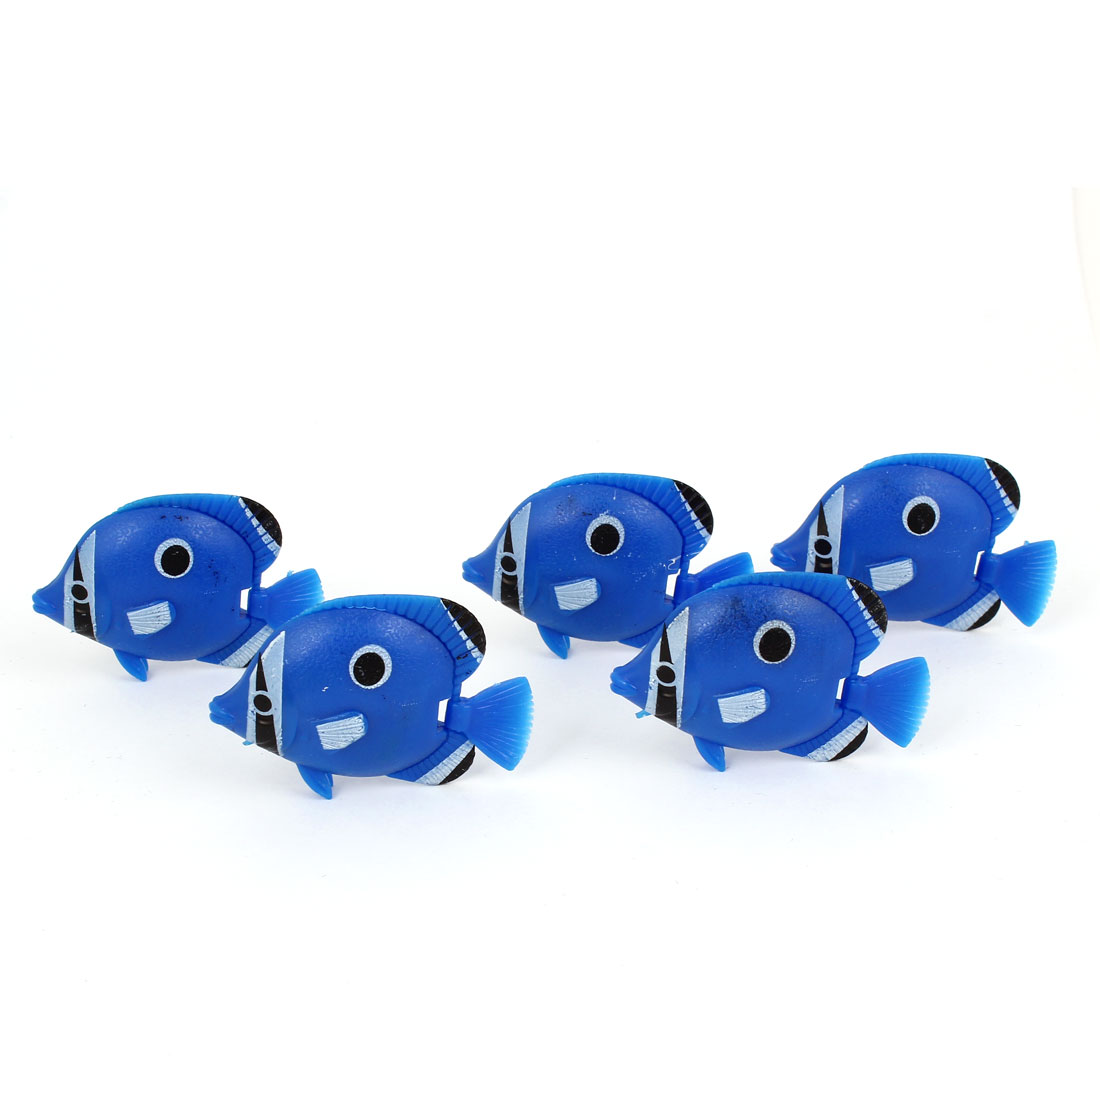 5 Pcs Aquarium Manmade Wiggly Tail Swimming Fishes Decor Blue